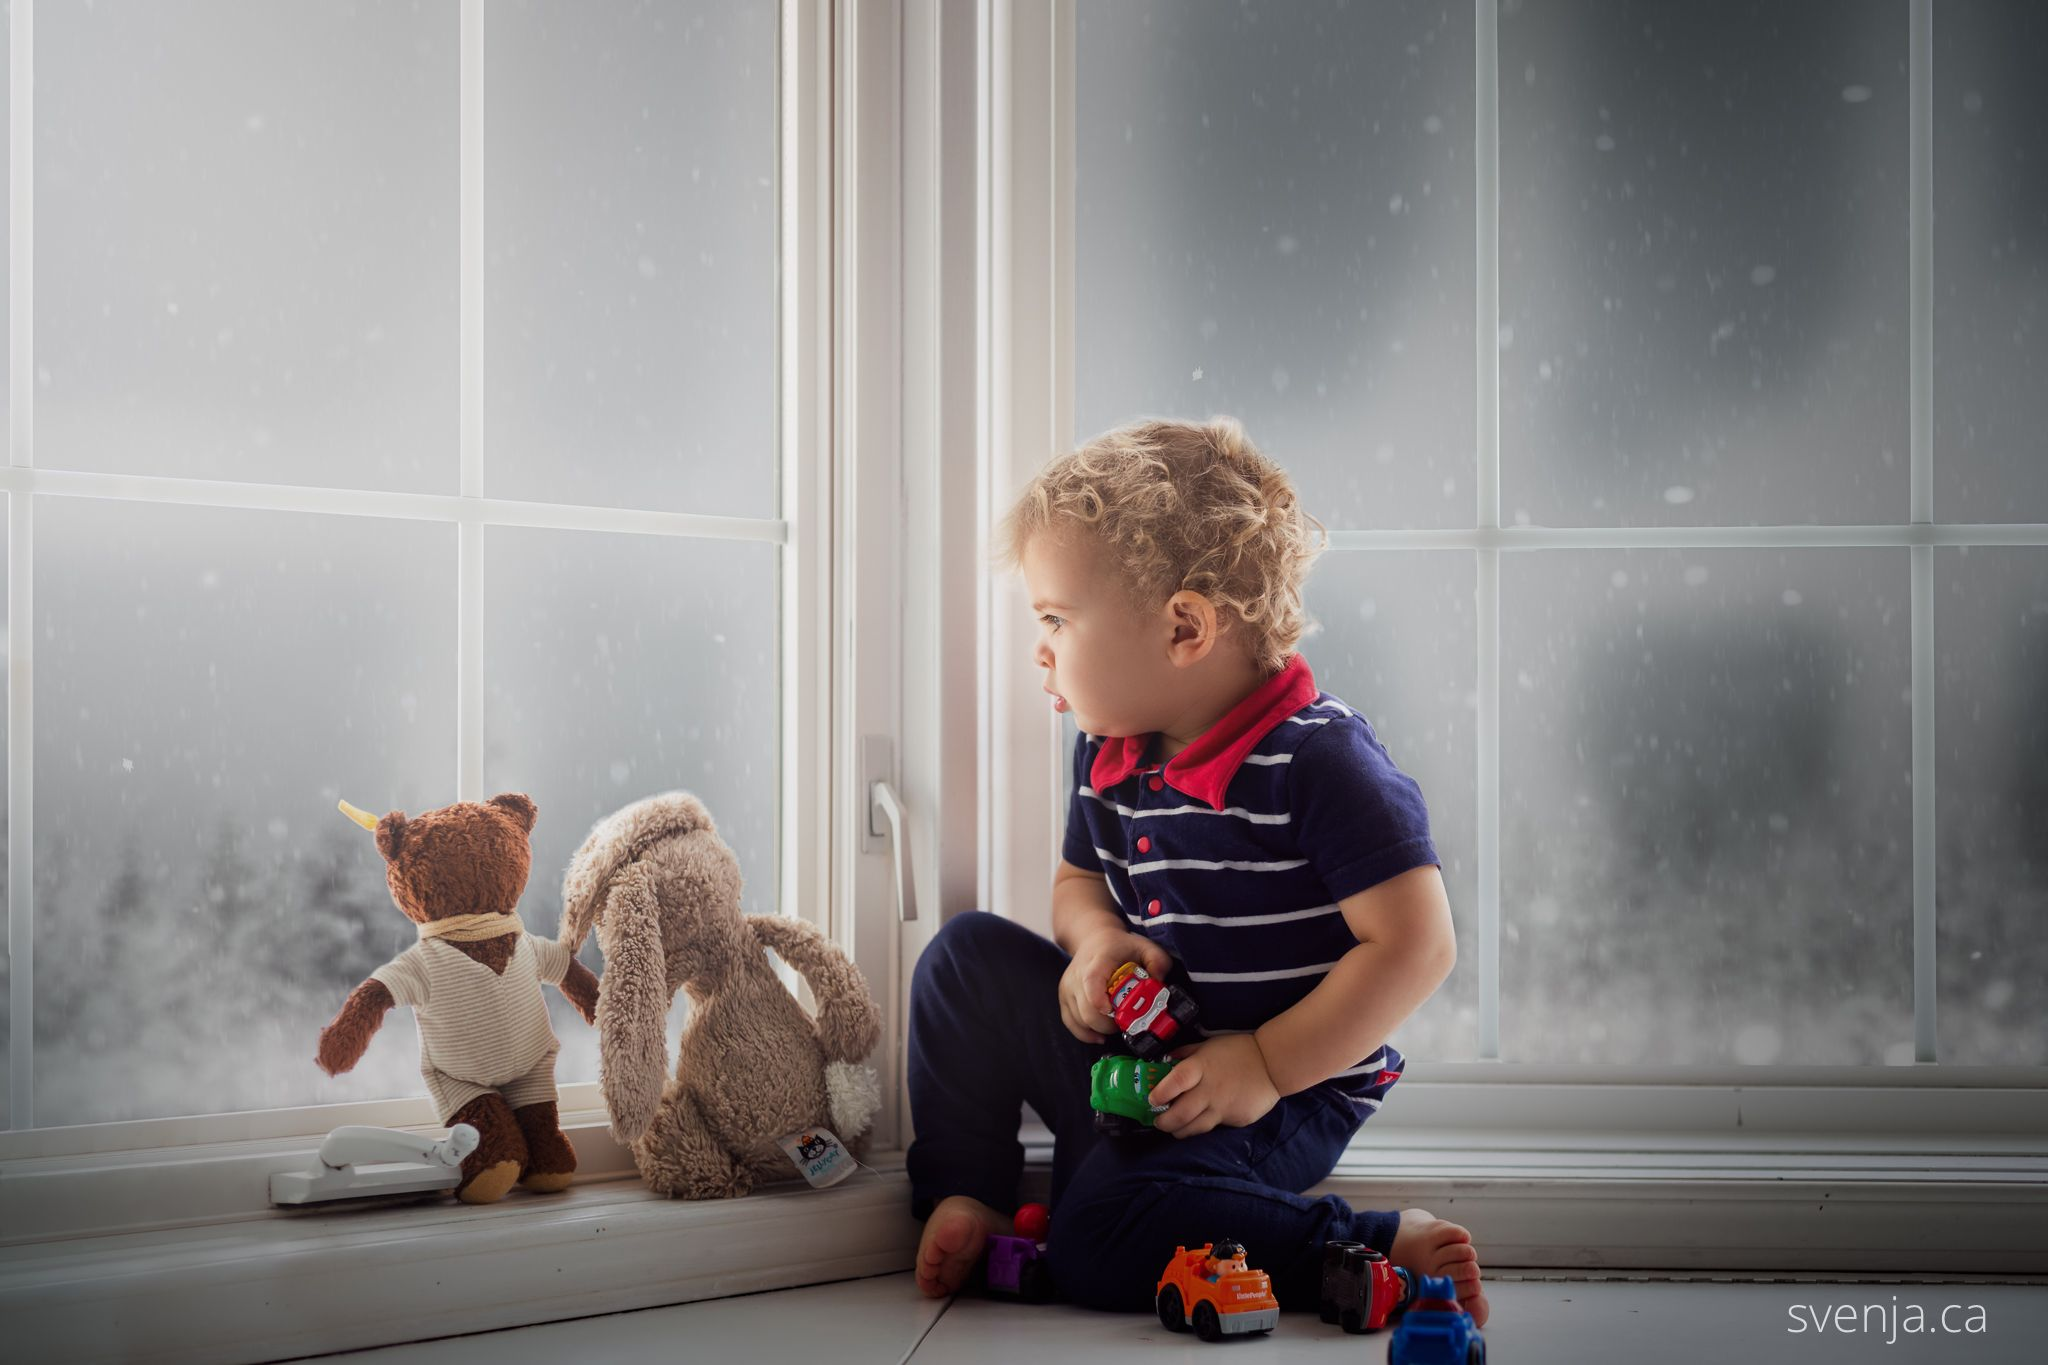 a toddler boy sits with his stuffed animals in a bay window looking at snow